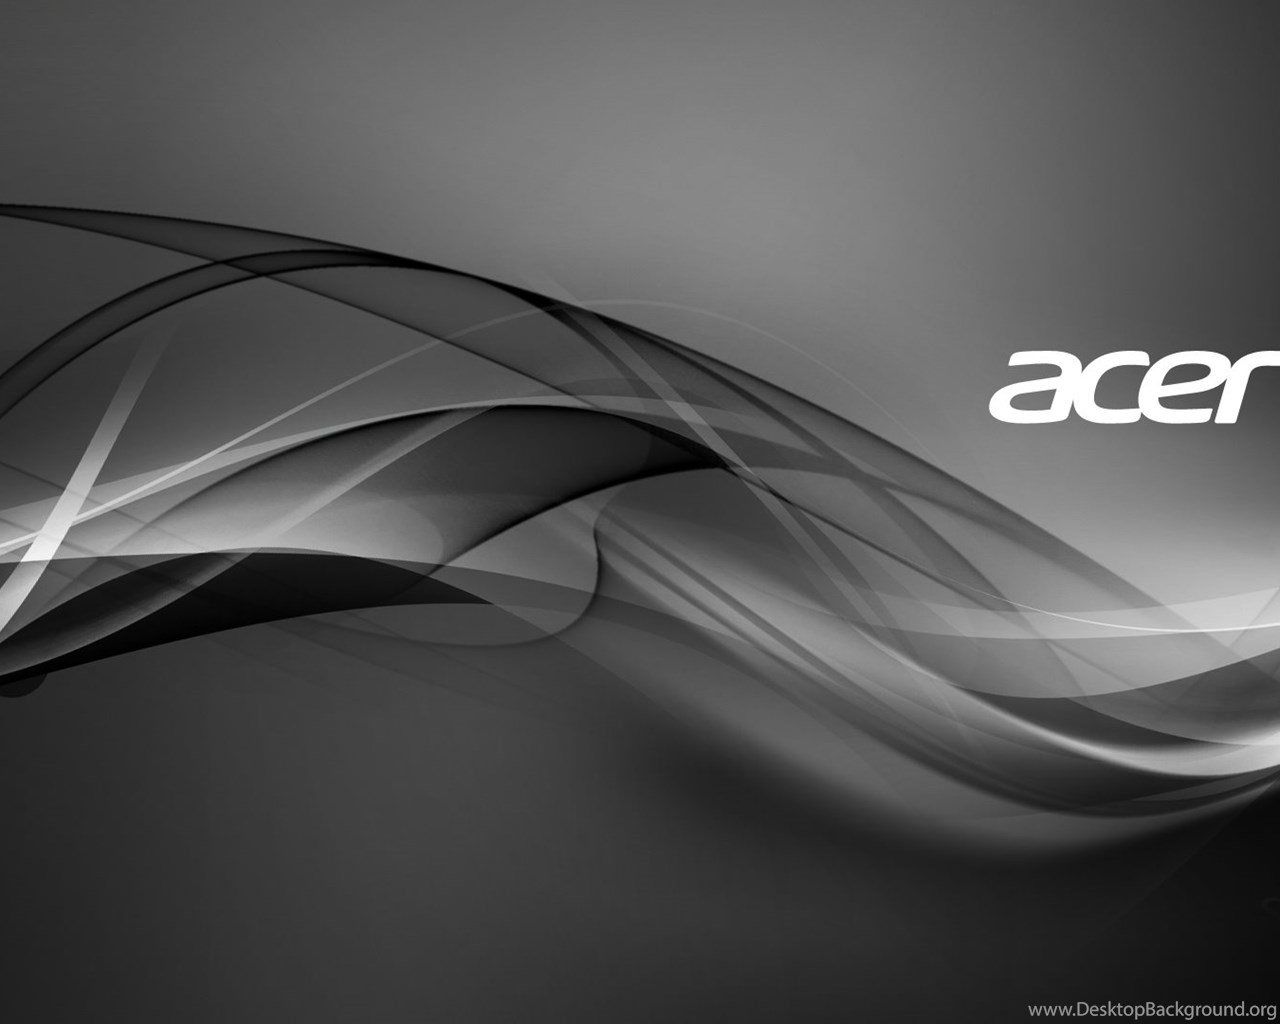 Acer PC Wallpapers HD Wallpapers Desktop Background